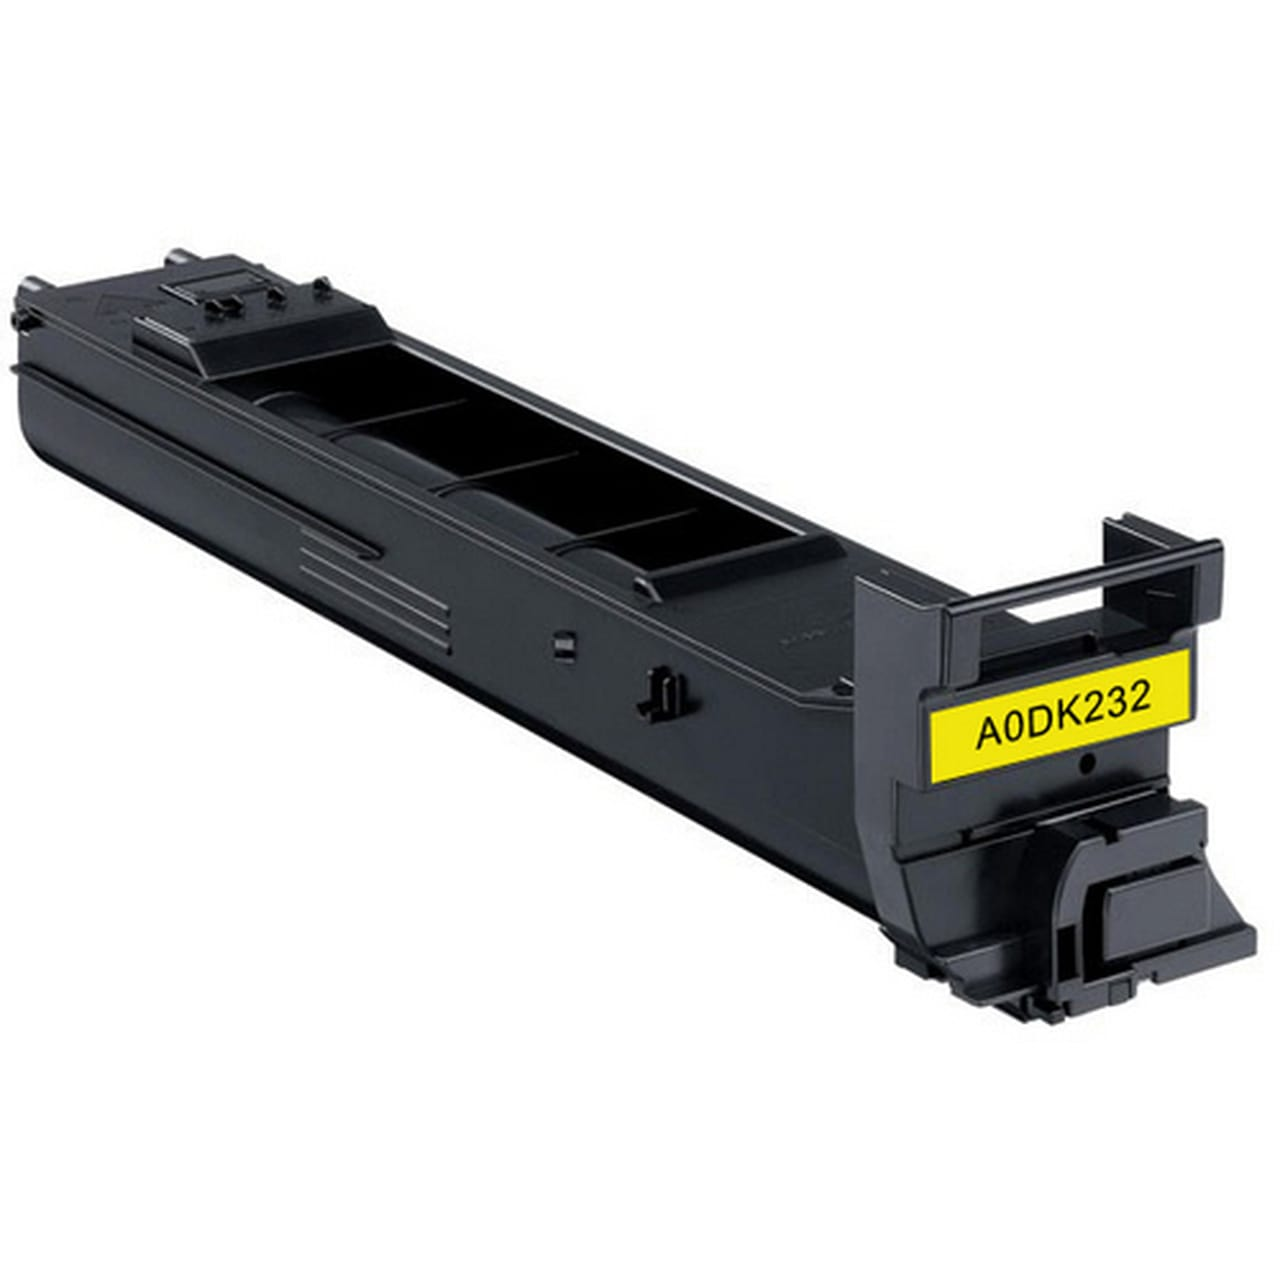 A0DK232 Toner Cartridge - Konica-Minolta Remanufactured  (Yellow)